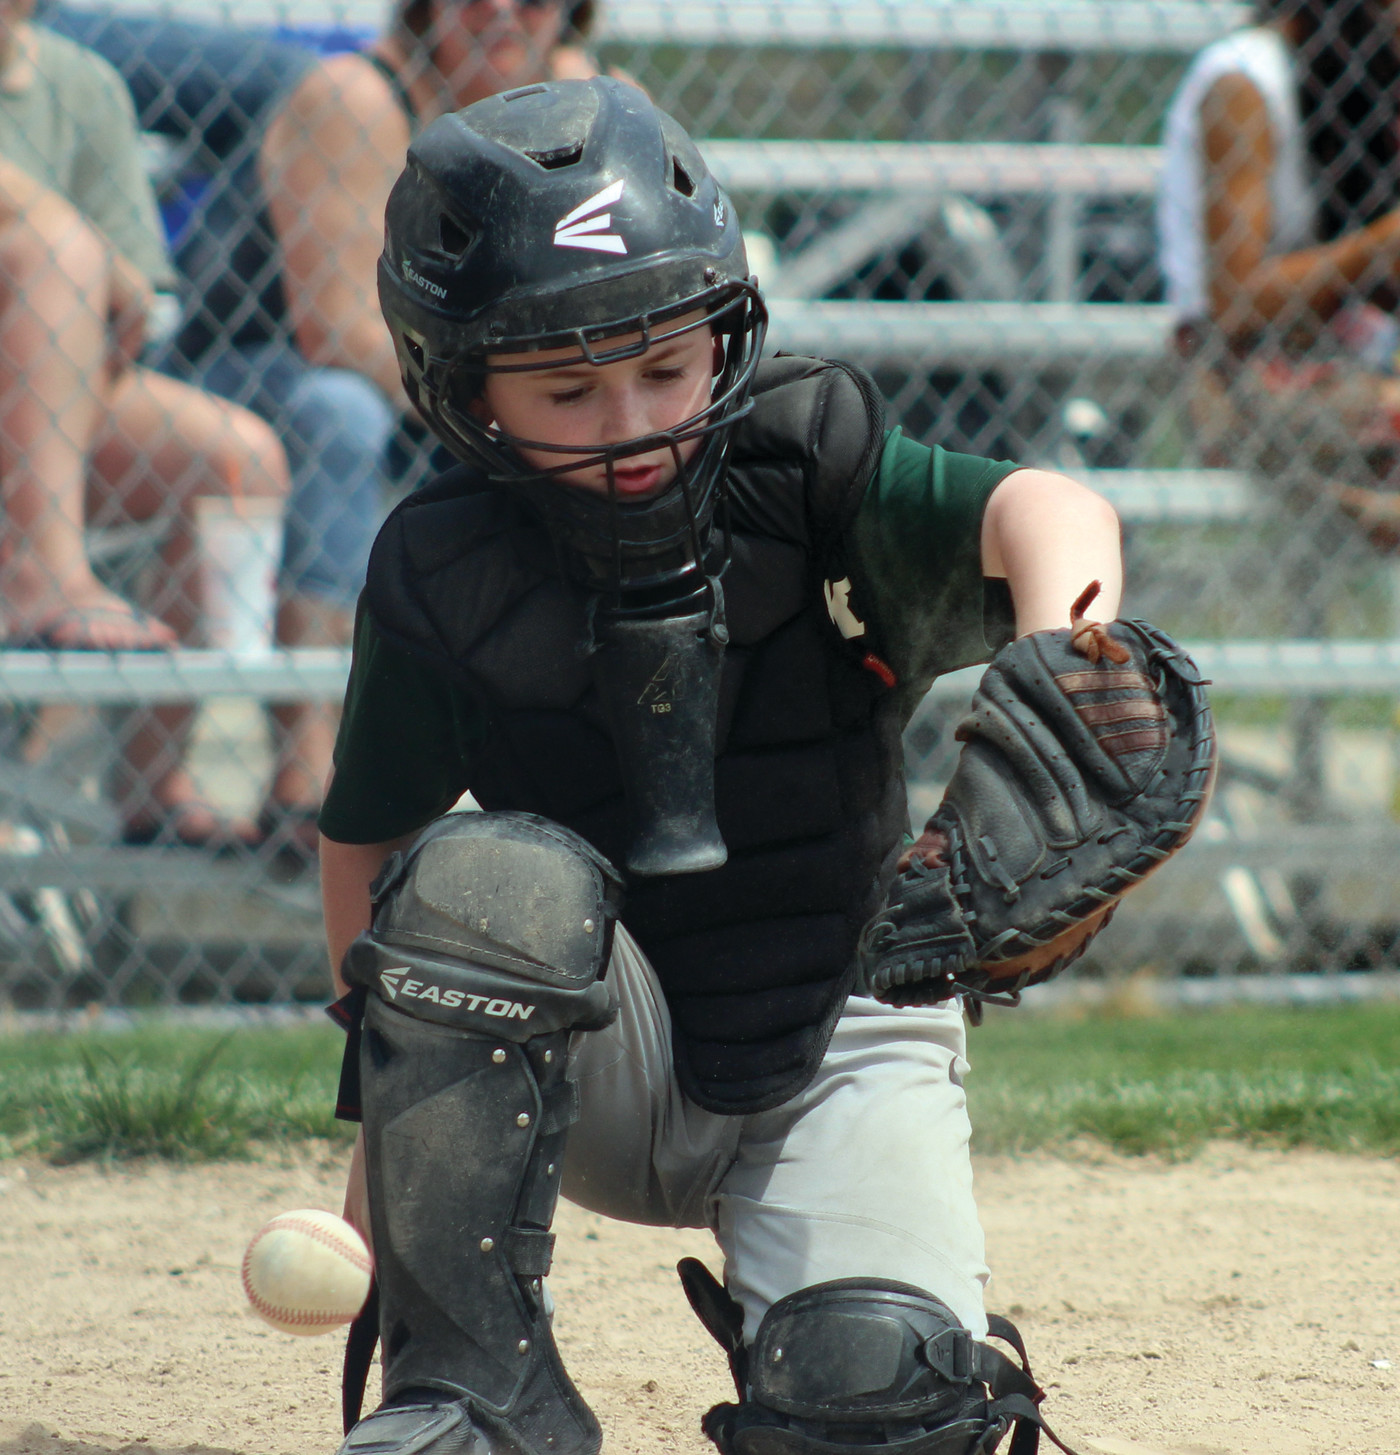 Starbucks catcher Zachari Fontenault makes a stop behind the plate.